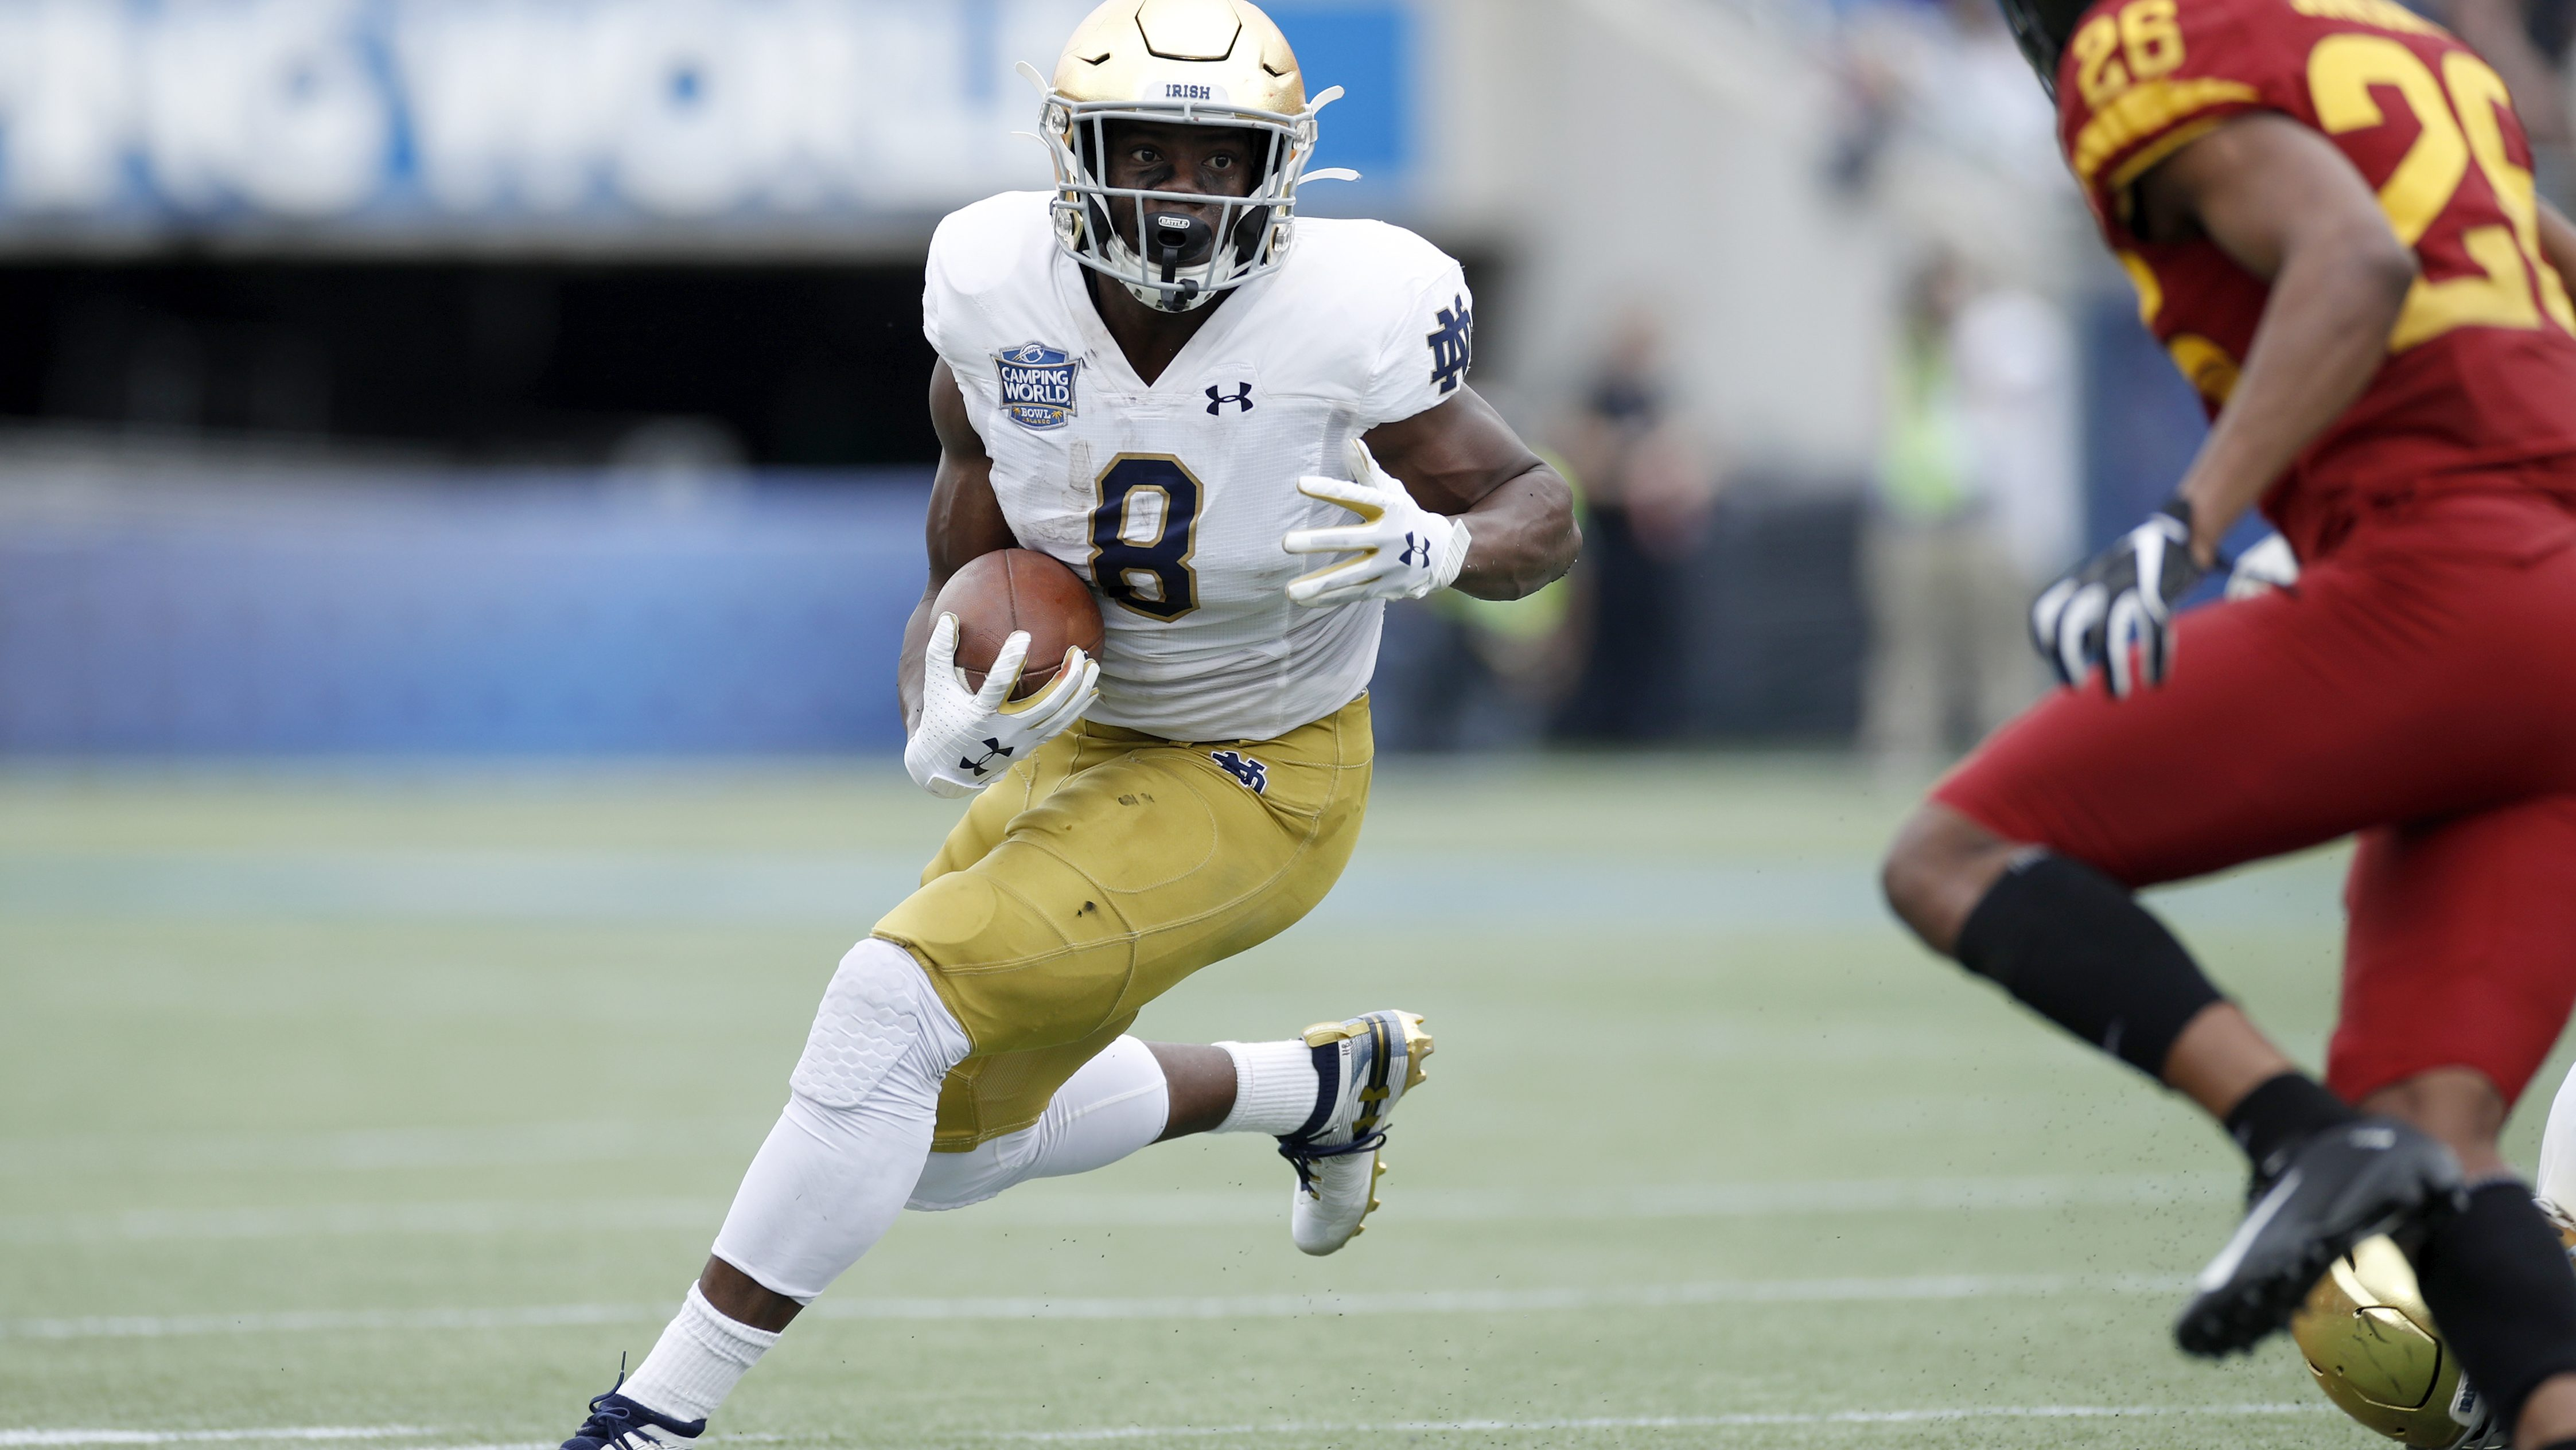 Where Notre Dame Was Is Will Be Running Backs Inside The Irish Nbc Sports